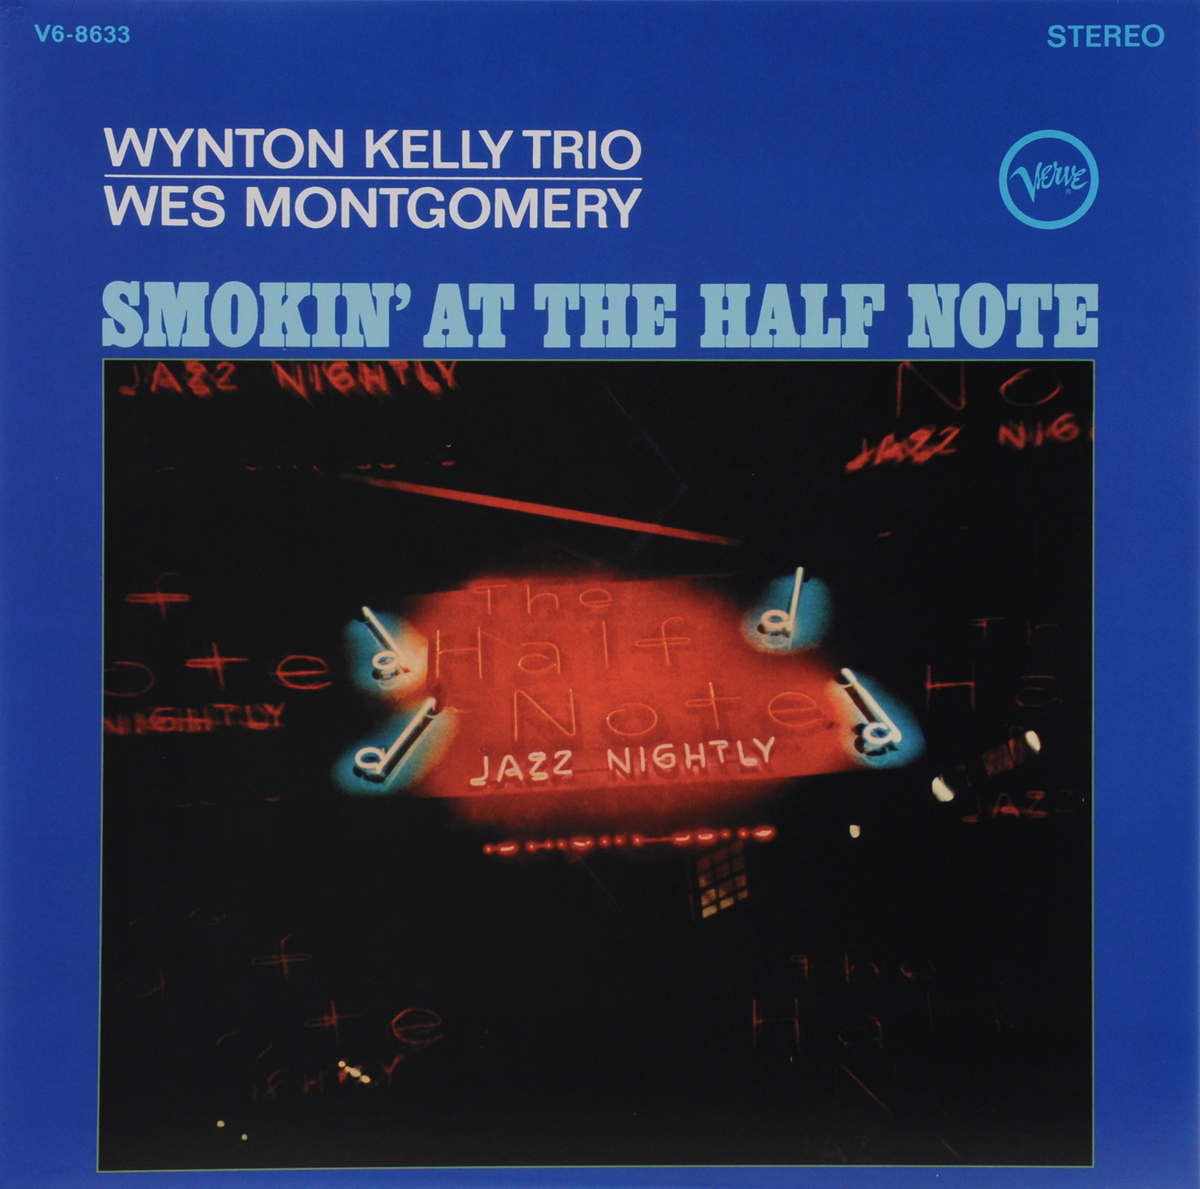 Wynton Kelly Trio,Уэс Монтгомери Wynton Kelly Trio / Wes Montgomery. Smokin' At The Half Note (LP) r kelly r kelly tp 3 reloaded